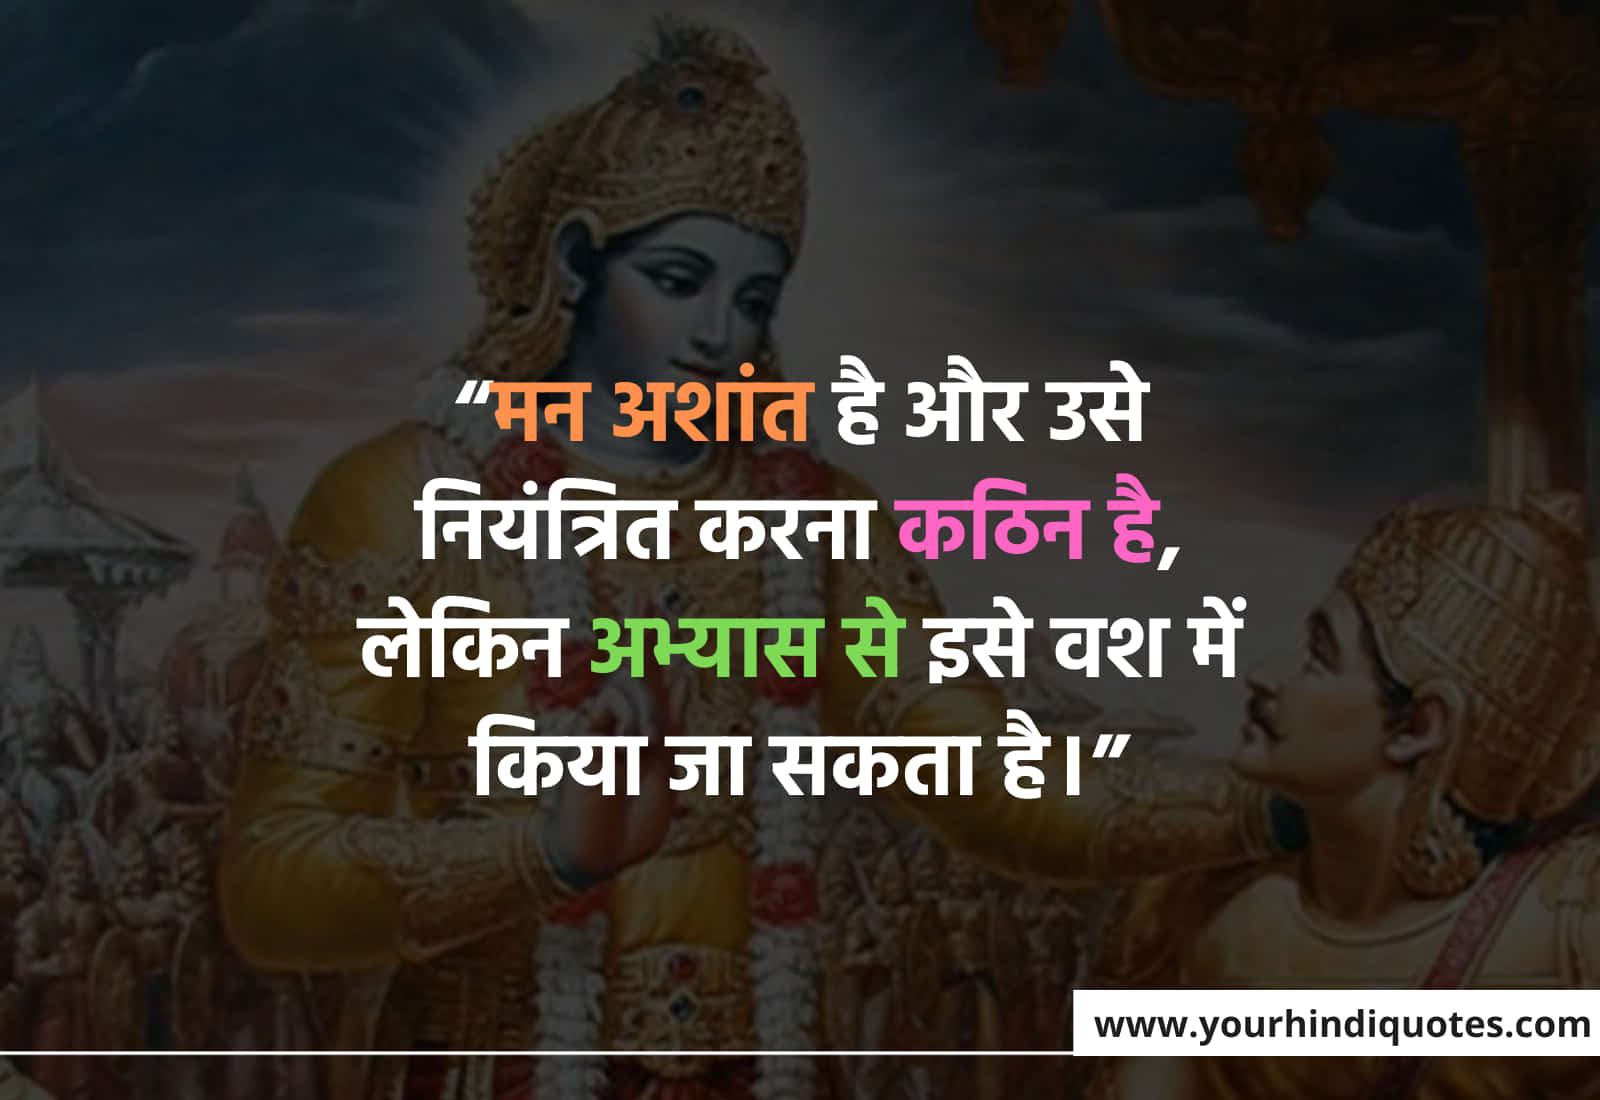 Best Bhagwat Gita Quotes For Life In Hindi